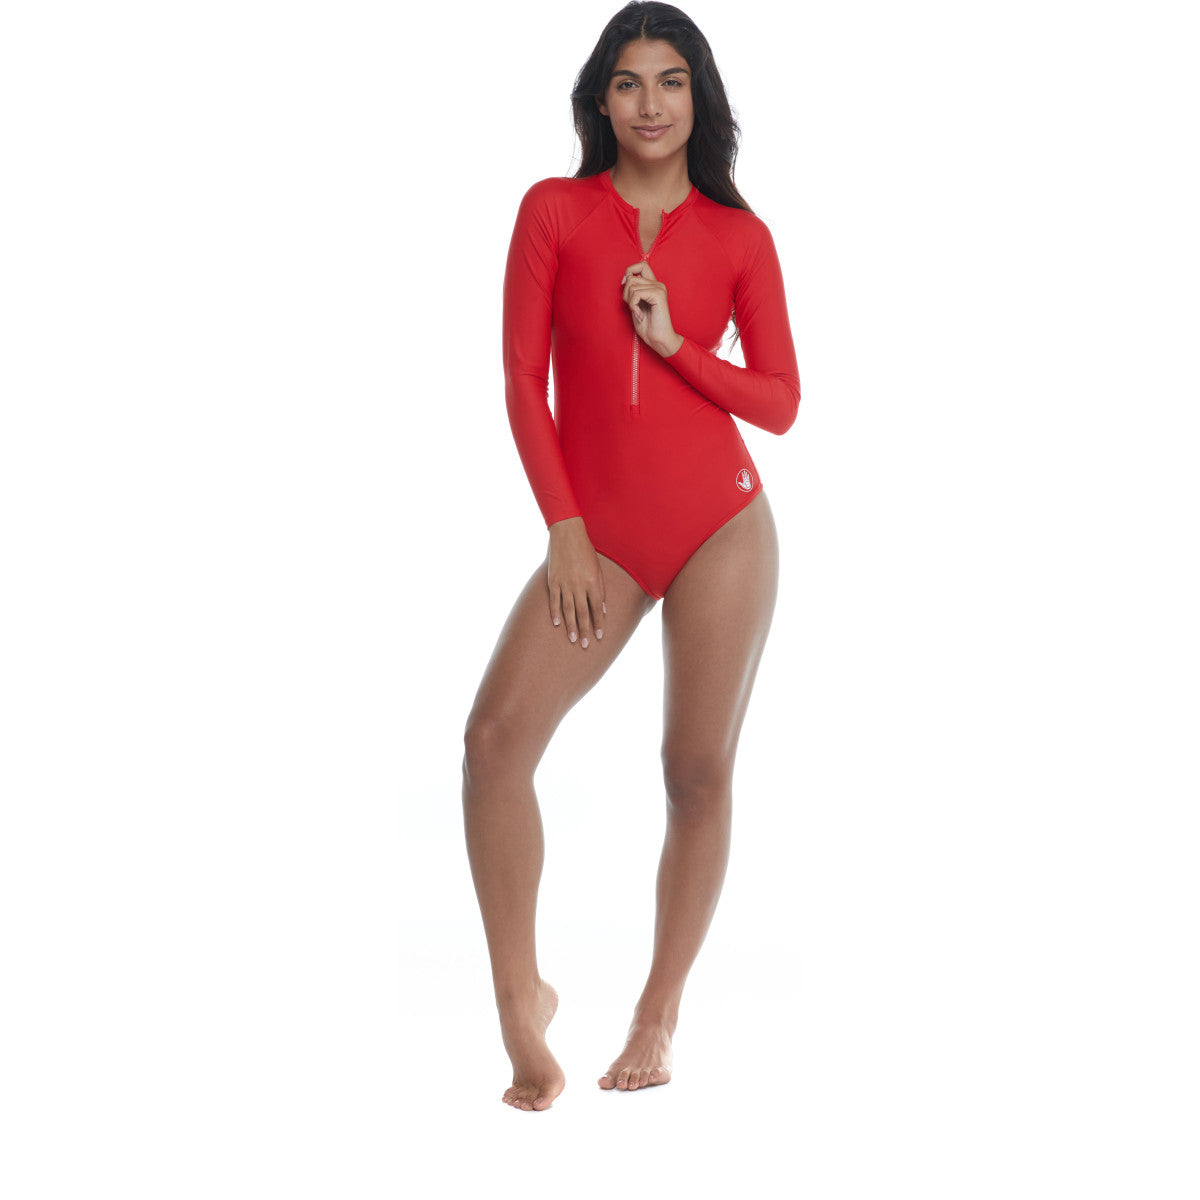 Body Glove Smoothies Chanel Paddle Suit